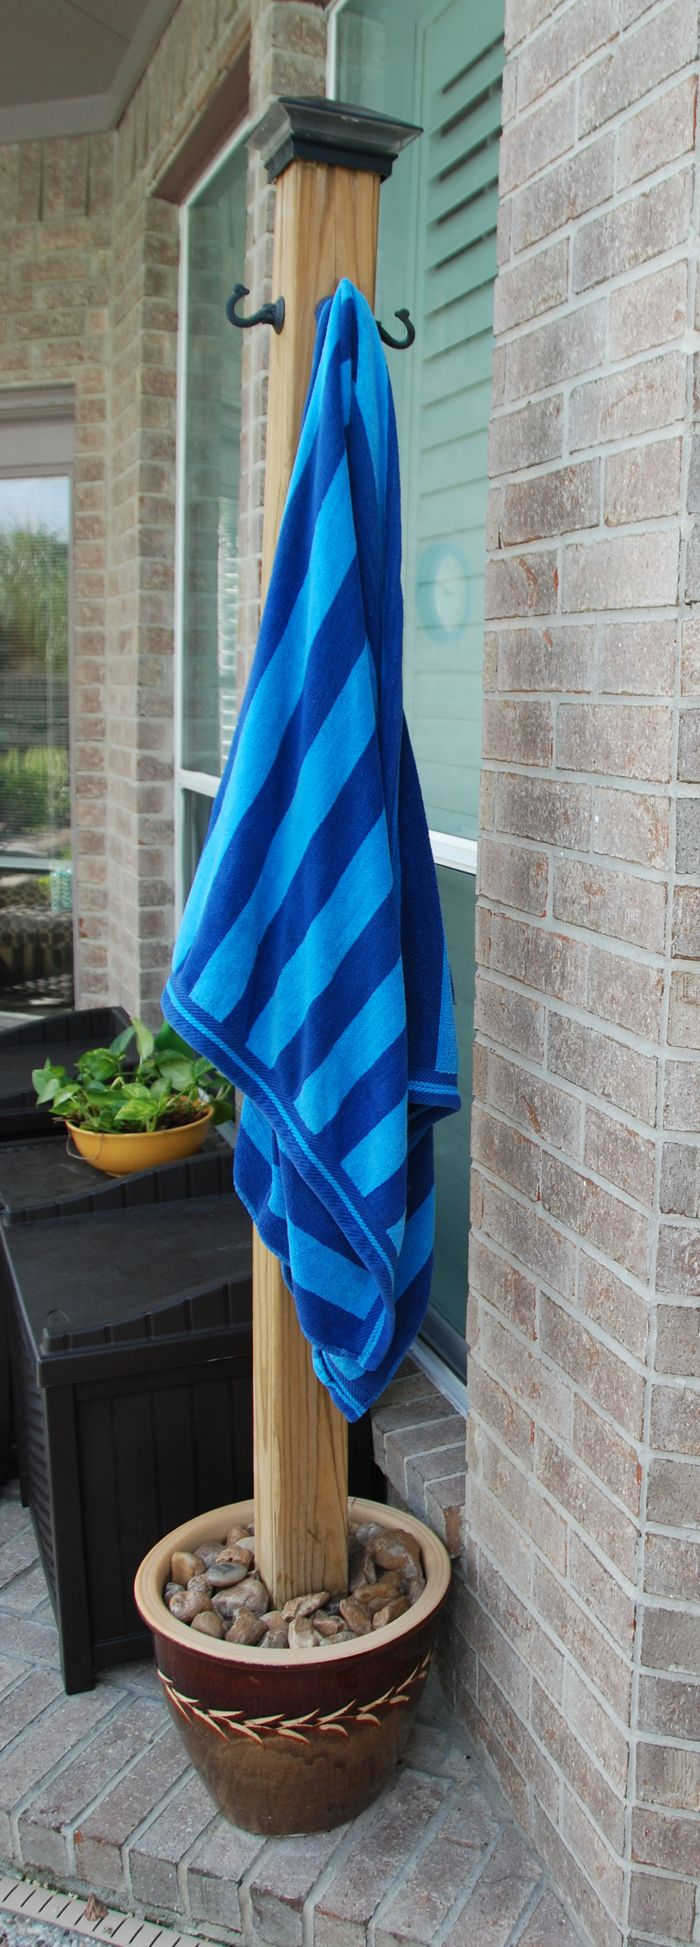 Diy pool towel holder we made this stand to hang our wet pool towels to dry after swimming - Seven mistakes we make when using towels ...